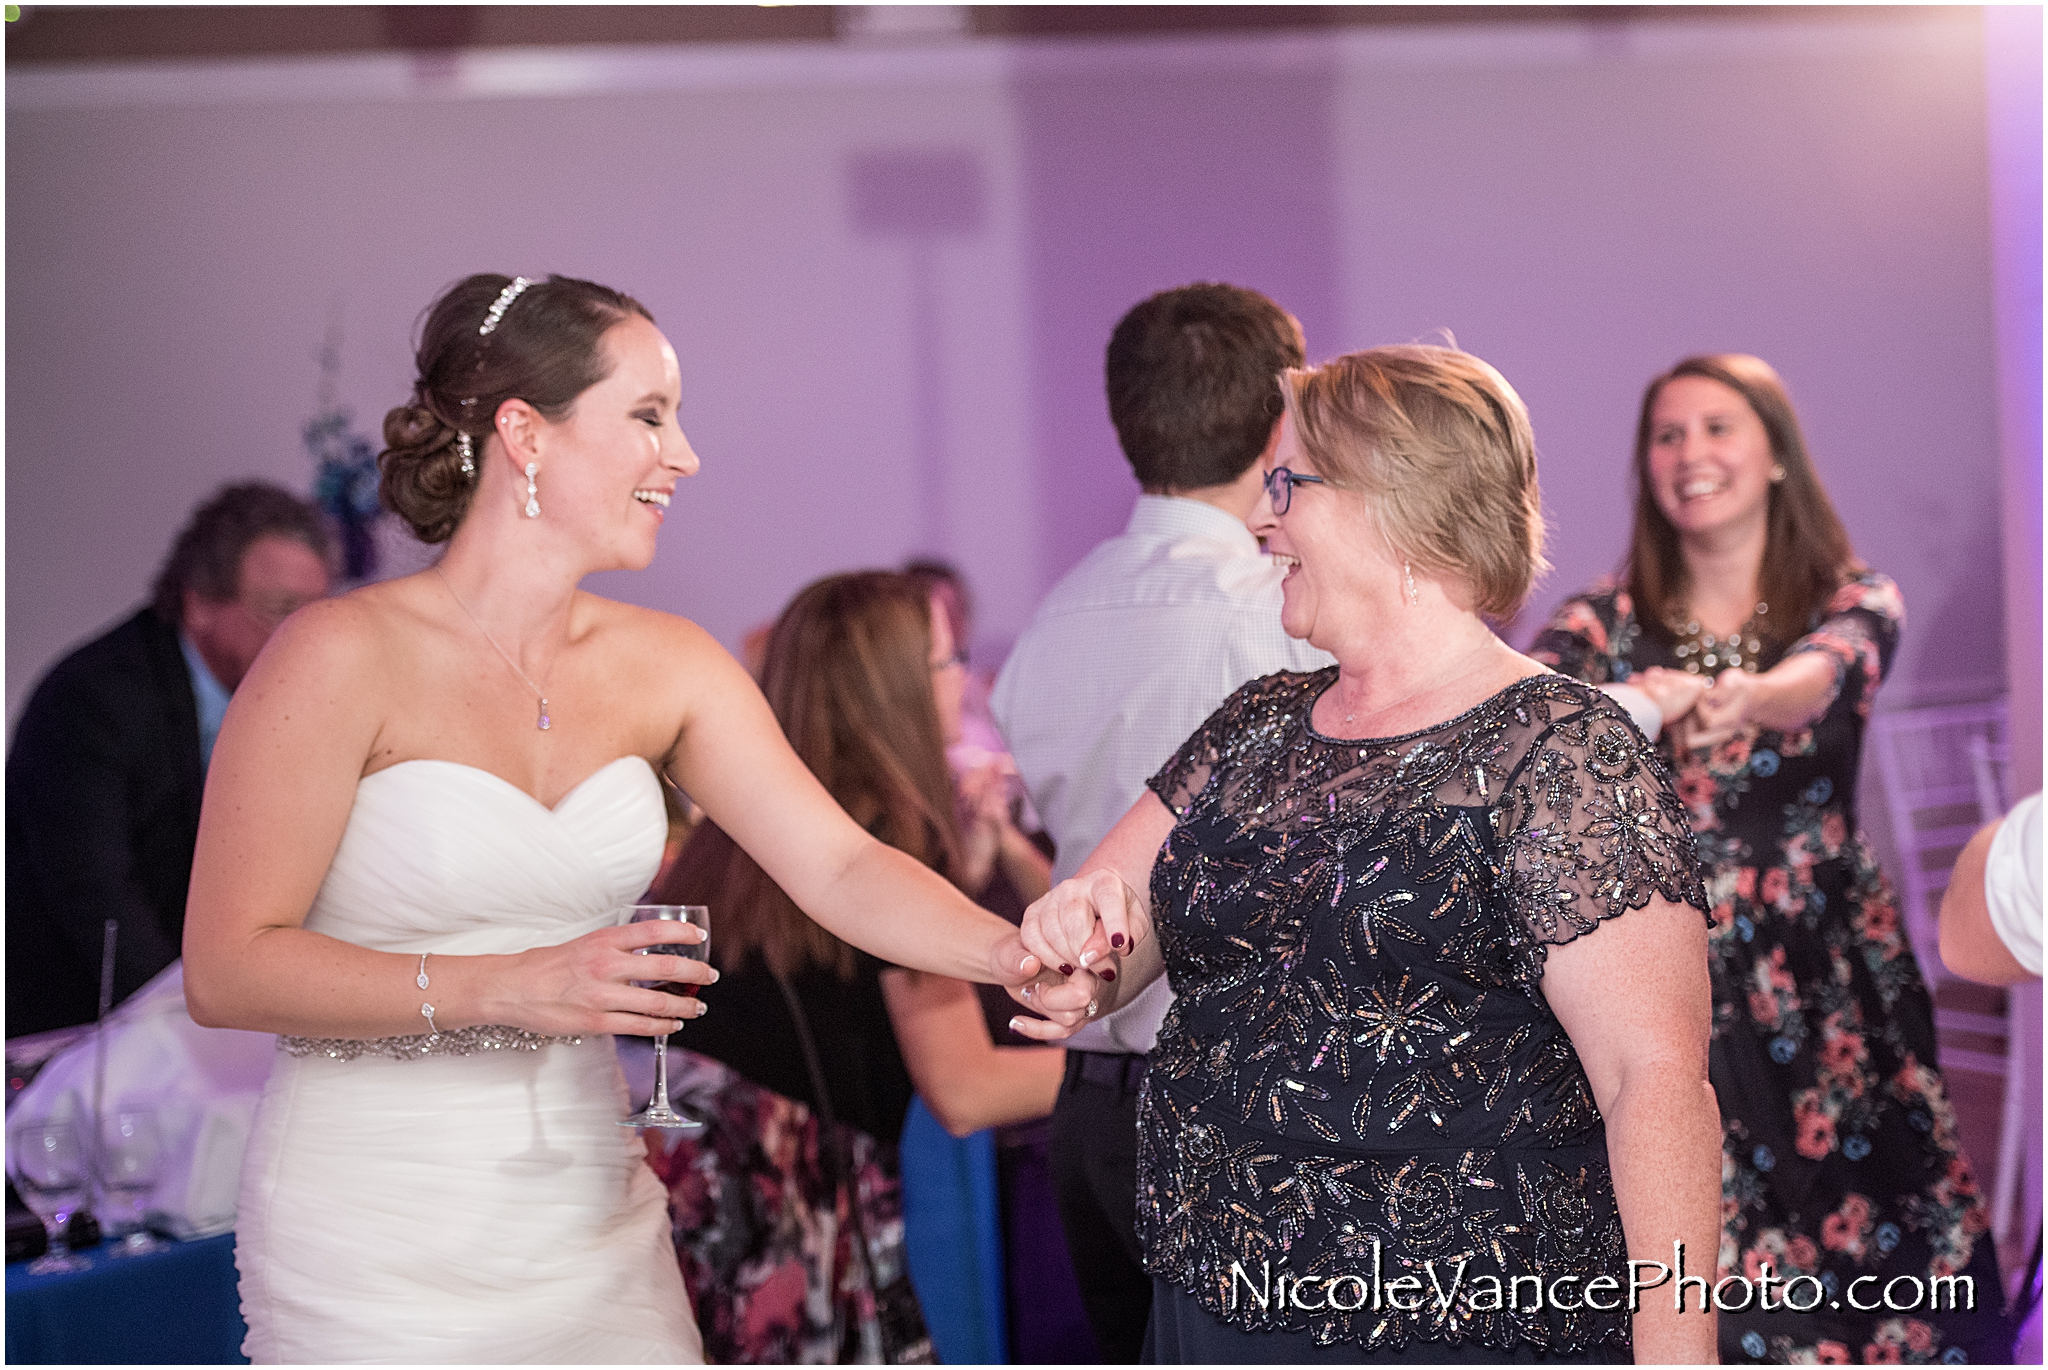 The bride and her mom enjoy the dance floor together.